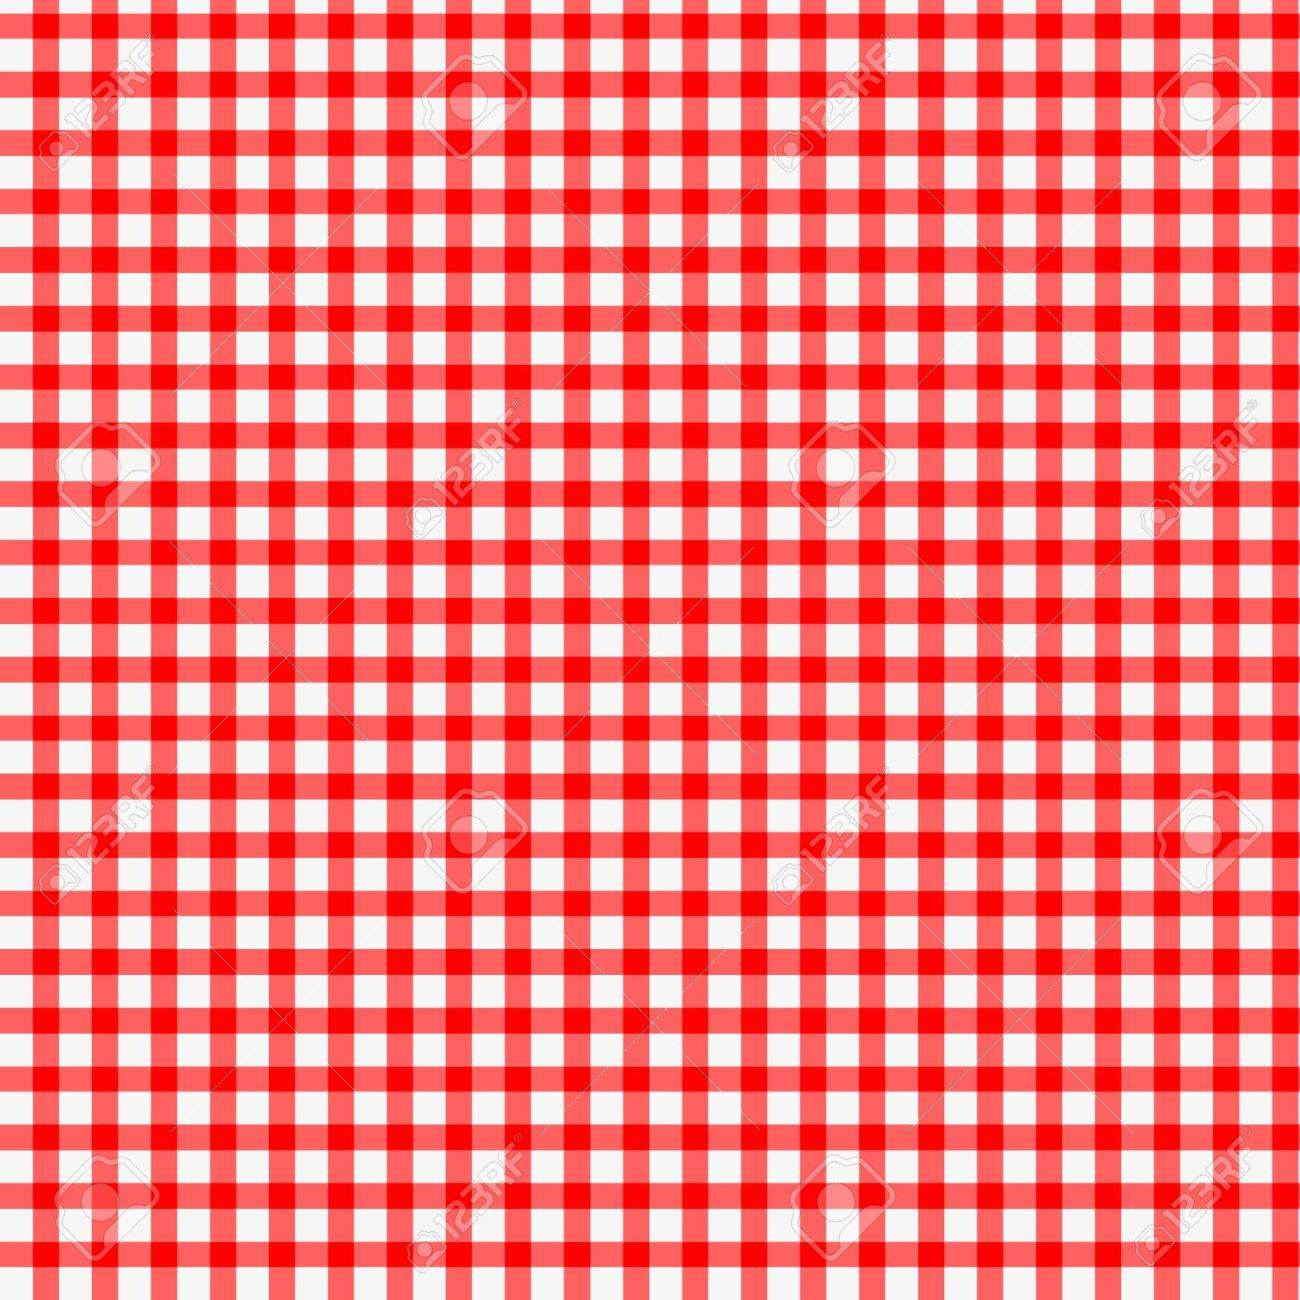 Checkered Design Seamless Checkered Pattern Royalty Free Cliparts Vectors And